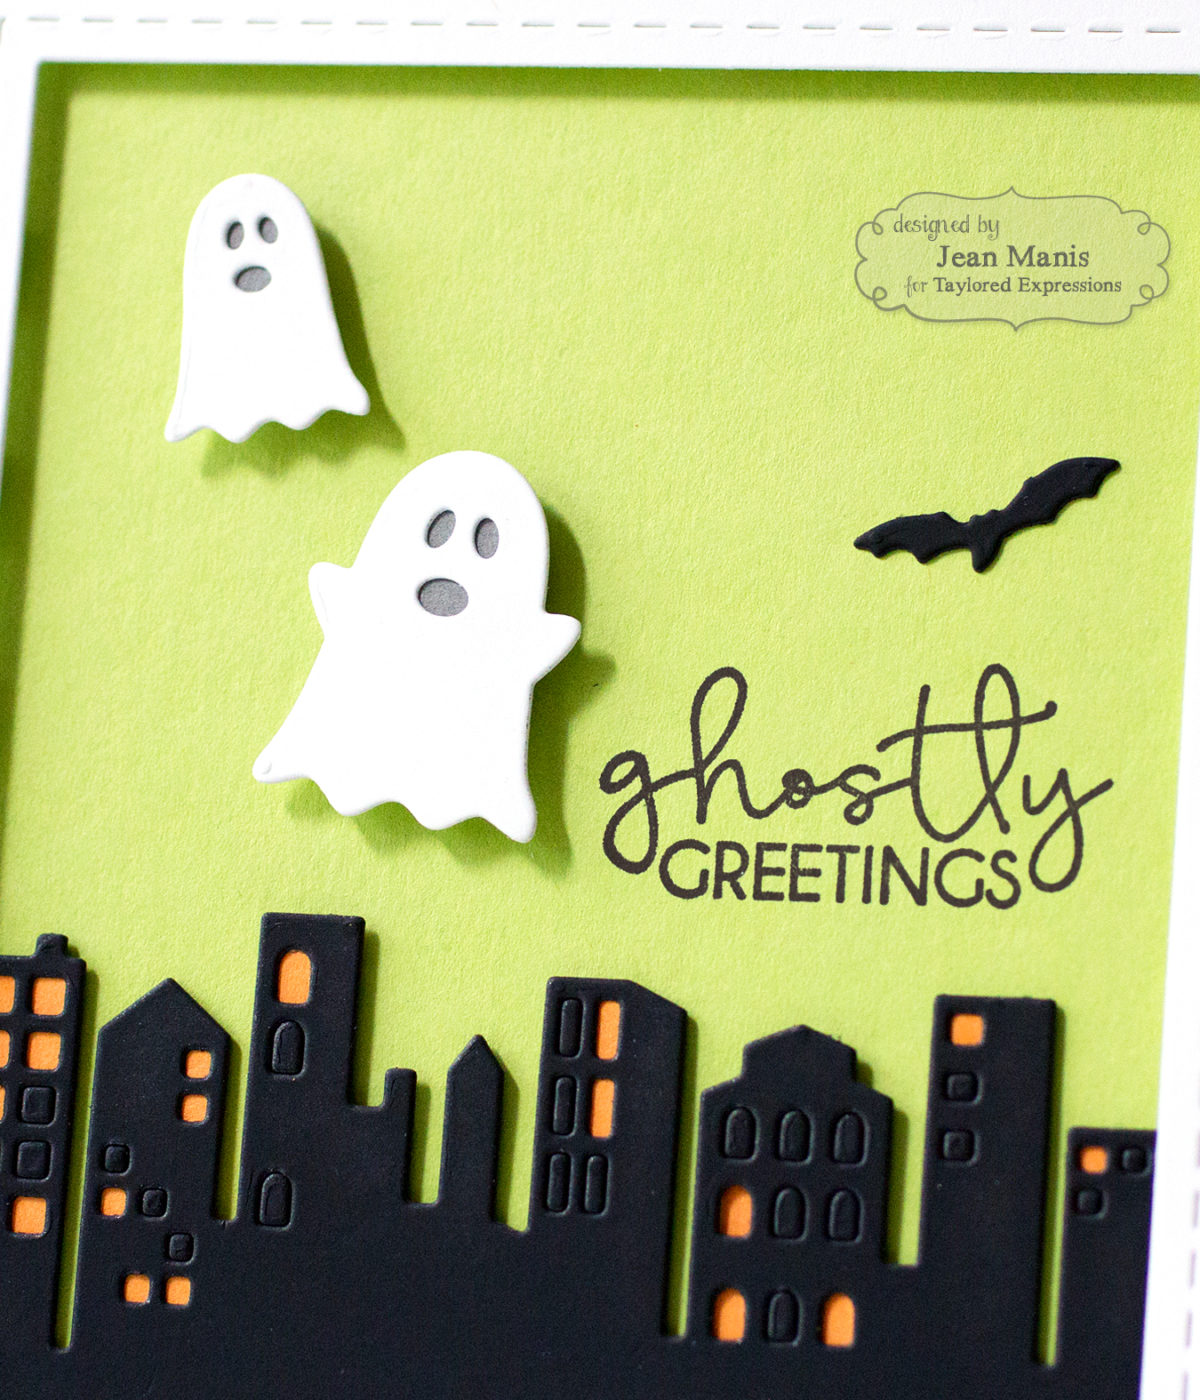 Ghostly Greetings! – Share Joy Challenge #52